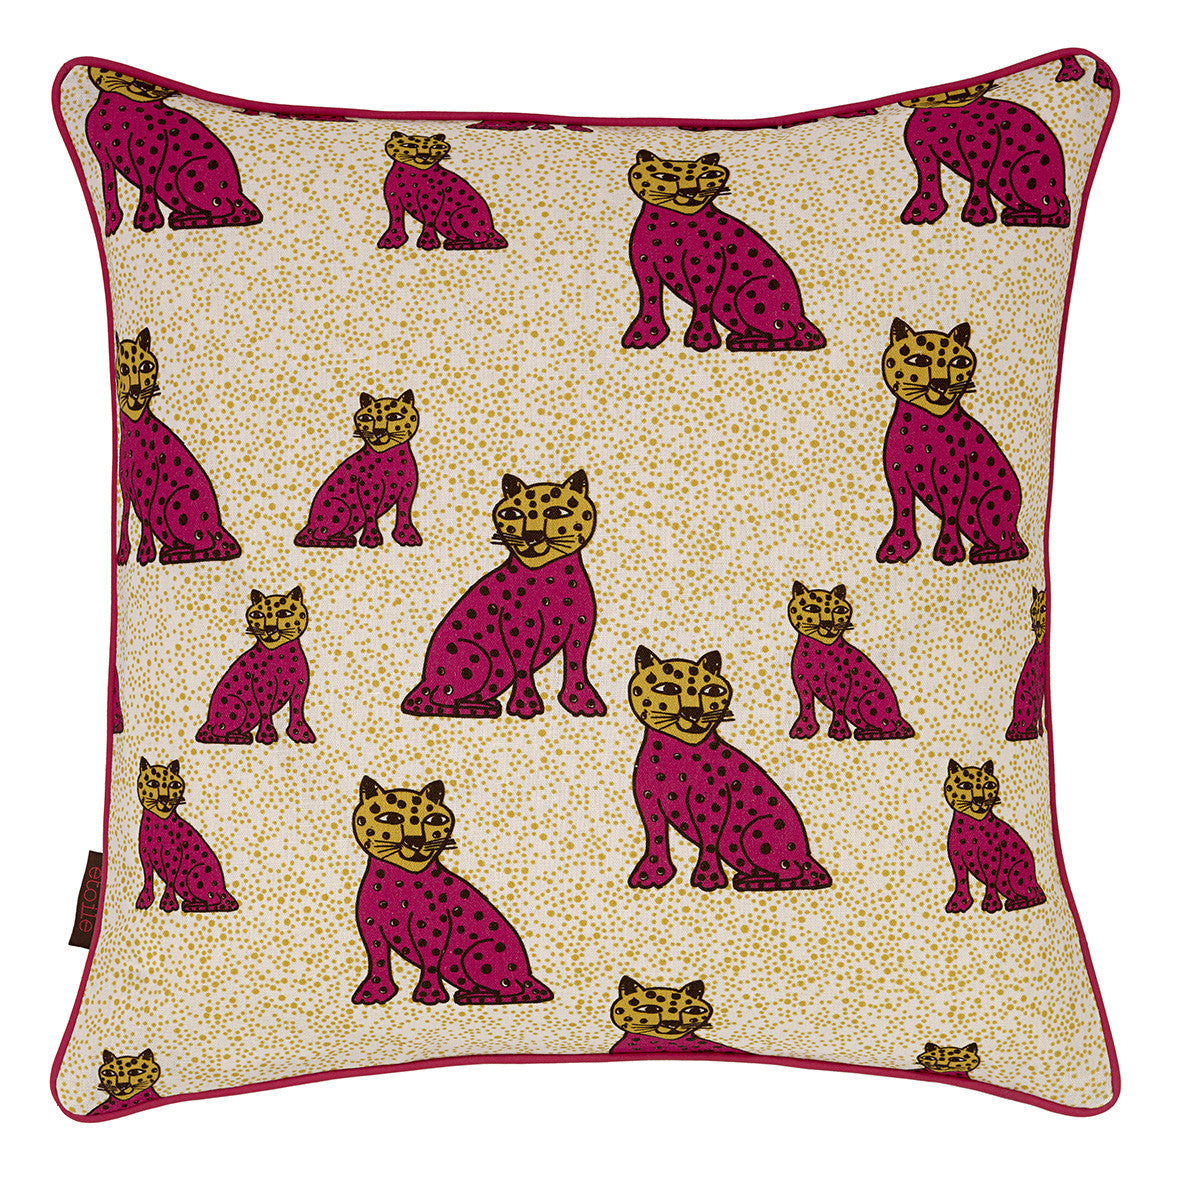 "Graphic Leopard Pattern Linen Union Printed Decorative Throw Pillow in Fuchsia Pink & Chocolate Brown 45x45cm (18x18"" pillow)"